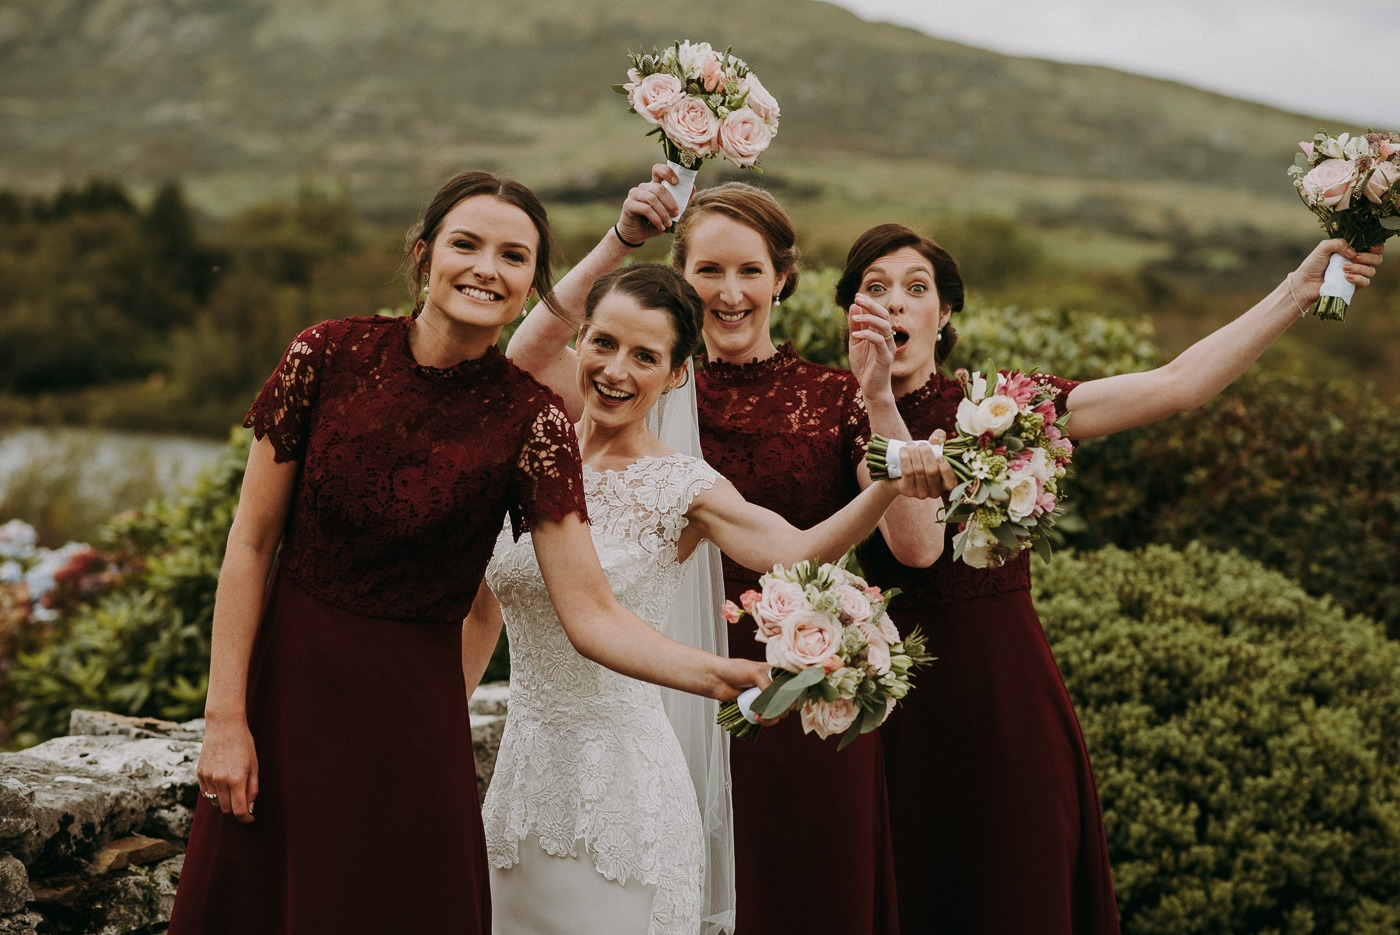 Leonora Kennedy et al. that are standing in a wedding dress